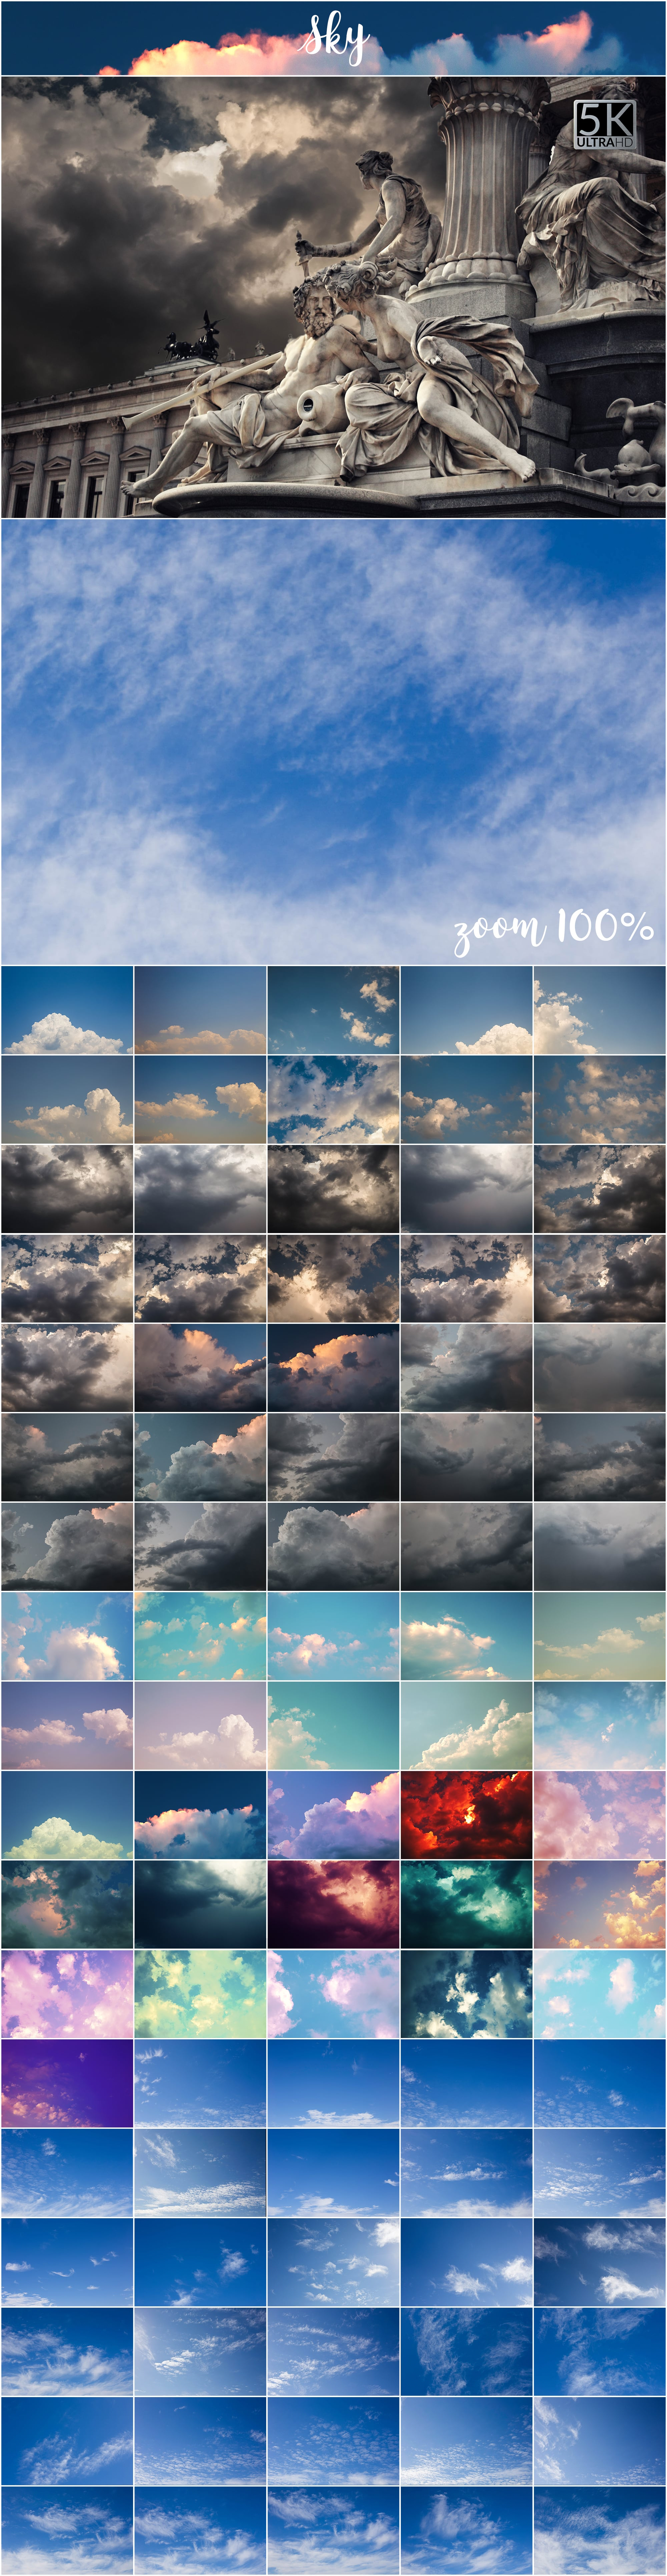 1053 Spectacular Overlays png - Only $18! - 4 Sky